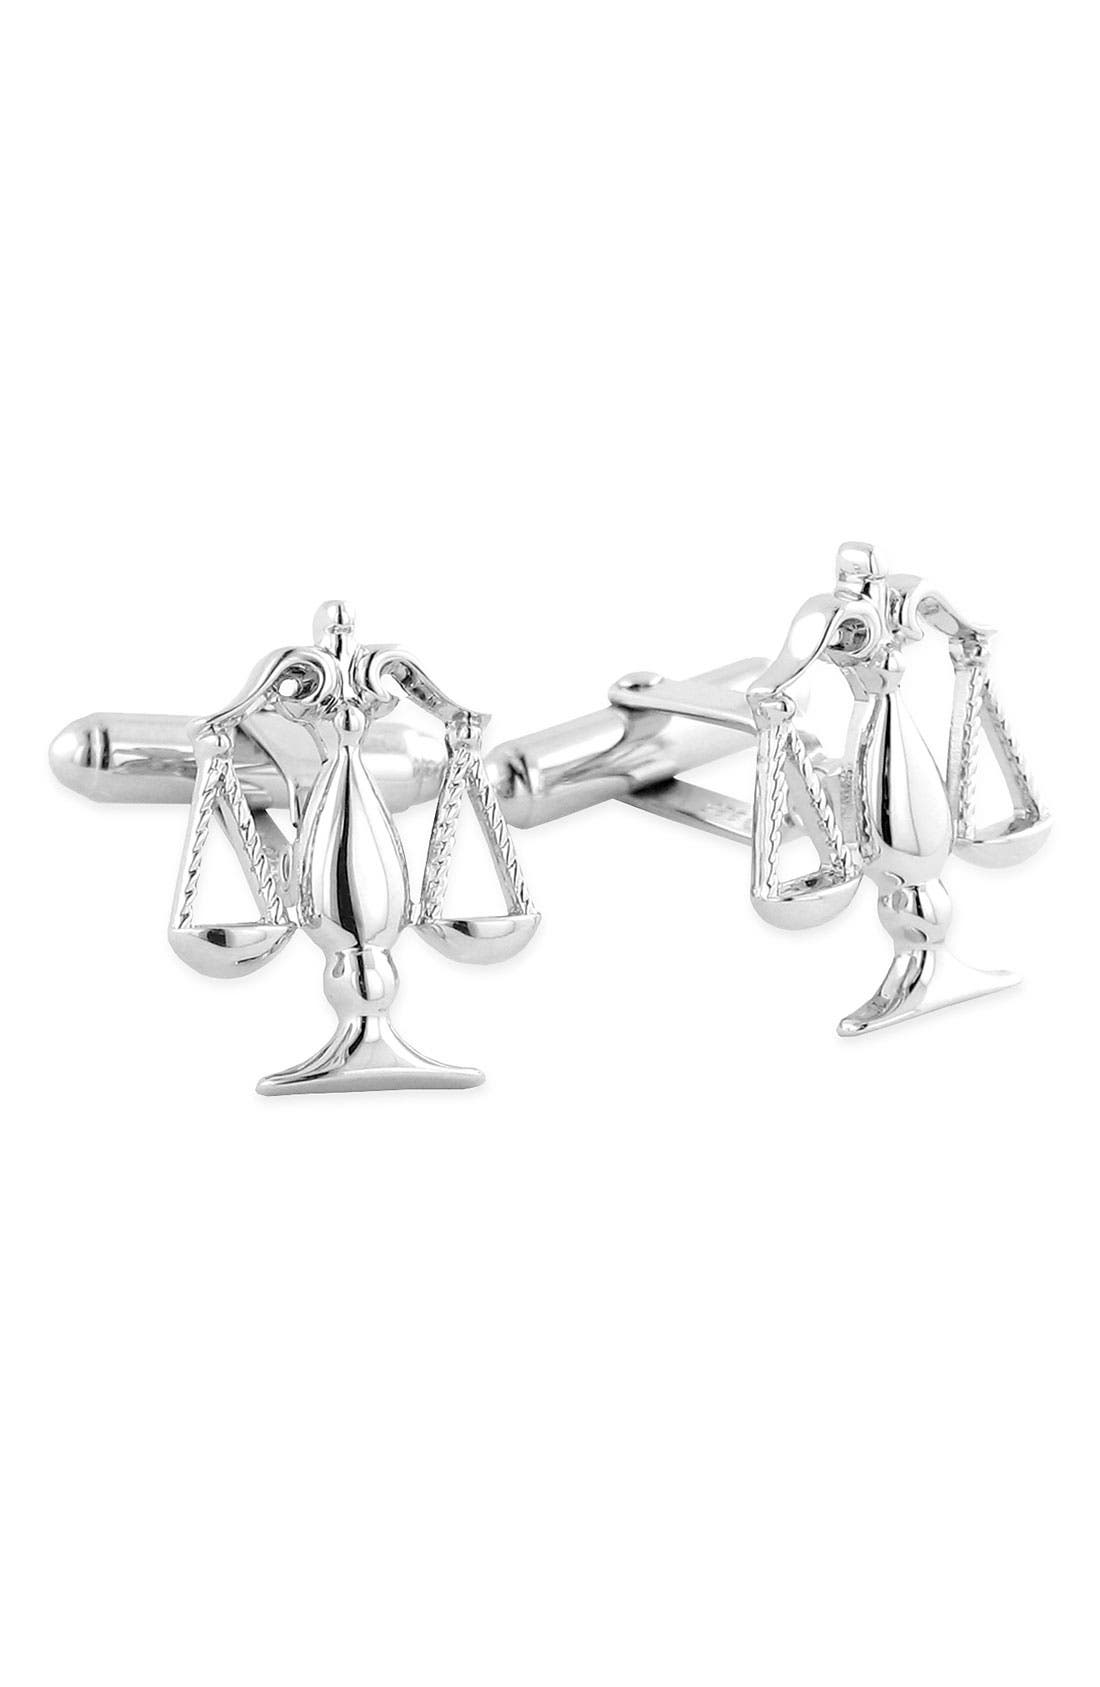 'Scales of Justice' Cuff Links,                         Main,                         color, SILVER LEGAL